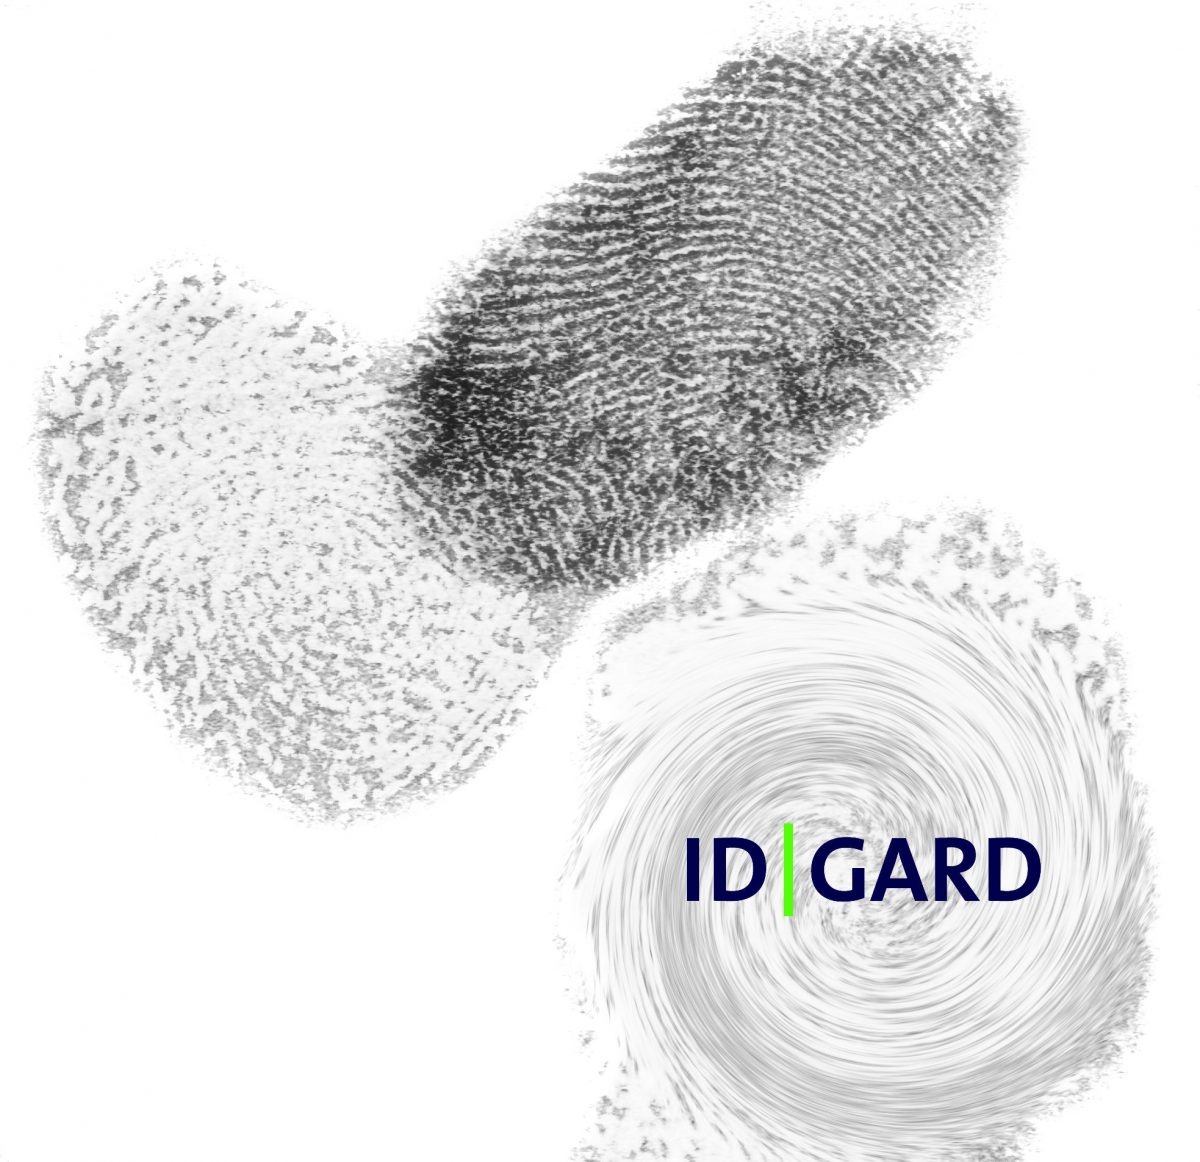 fingerprint_privacy3